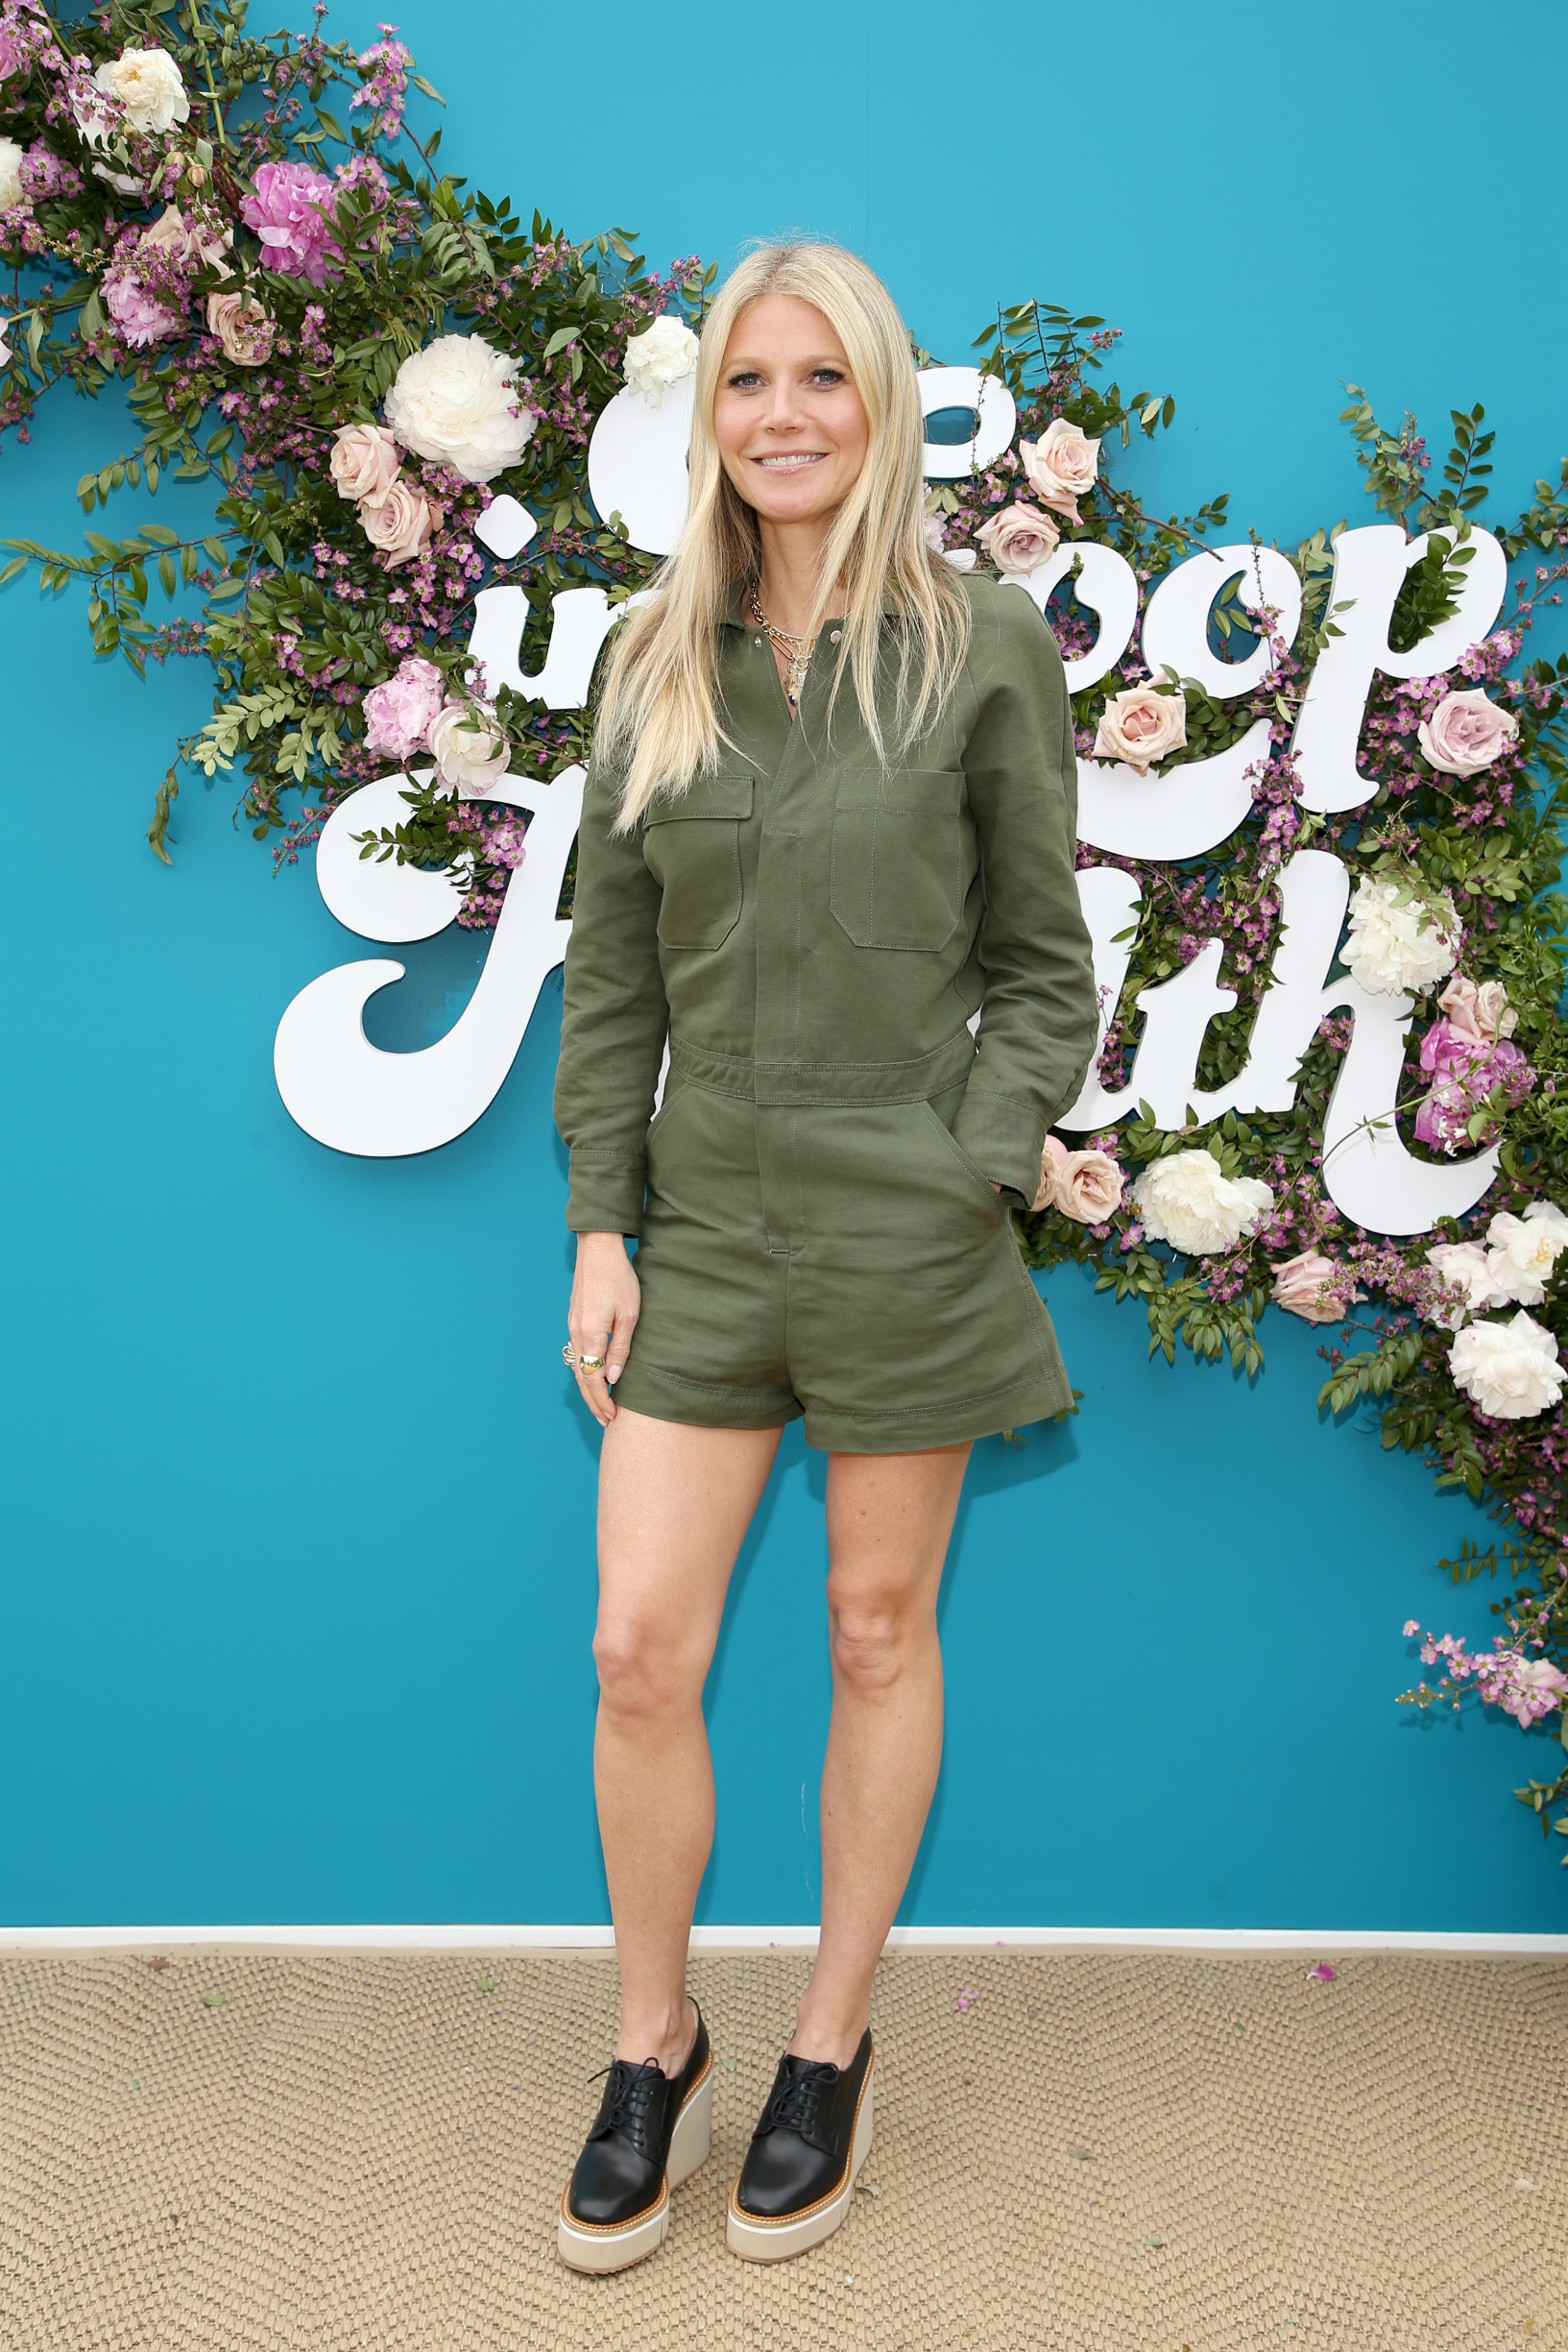 LOS ANGELES, CALIFORNIA - MAY 18: goop CEO Gwyneth Paltrow attends In goop Health Summit Los Angeles 2019 at Rolling Greens Nursery on May 18, 2019 in Los Angeles, California. (Photo by Phillip Faraone/Getty Images for goop)